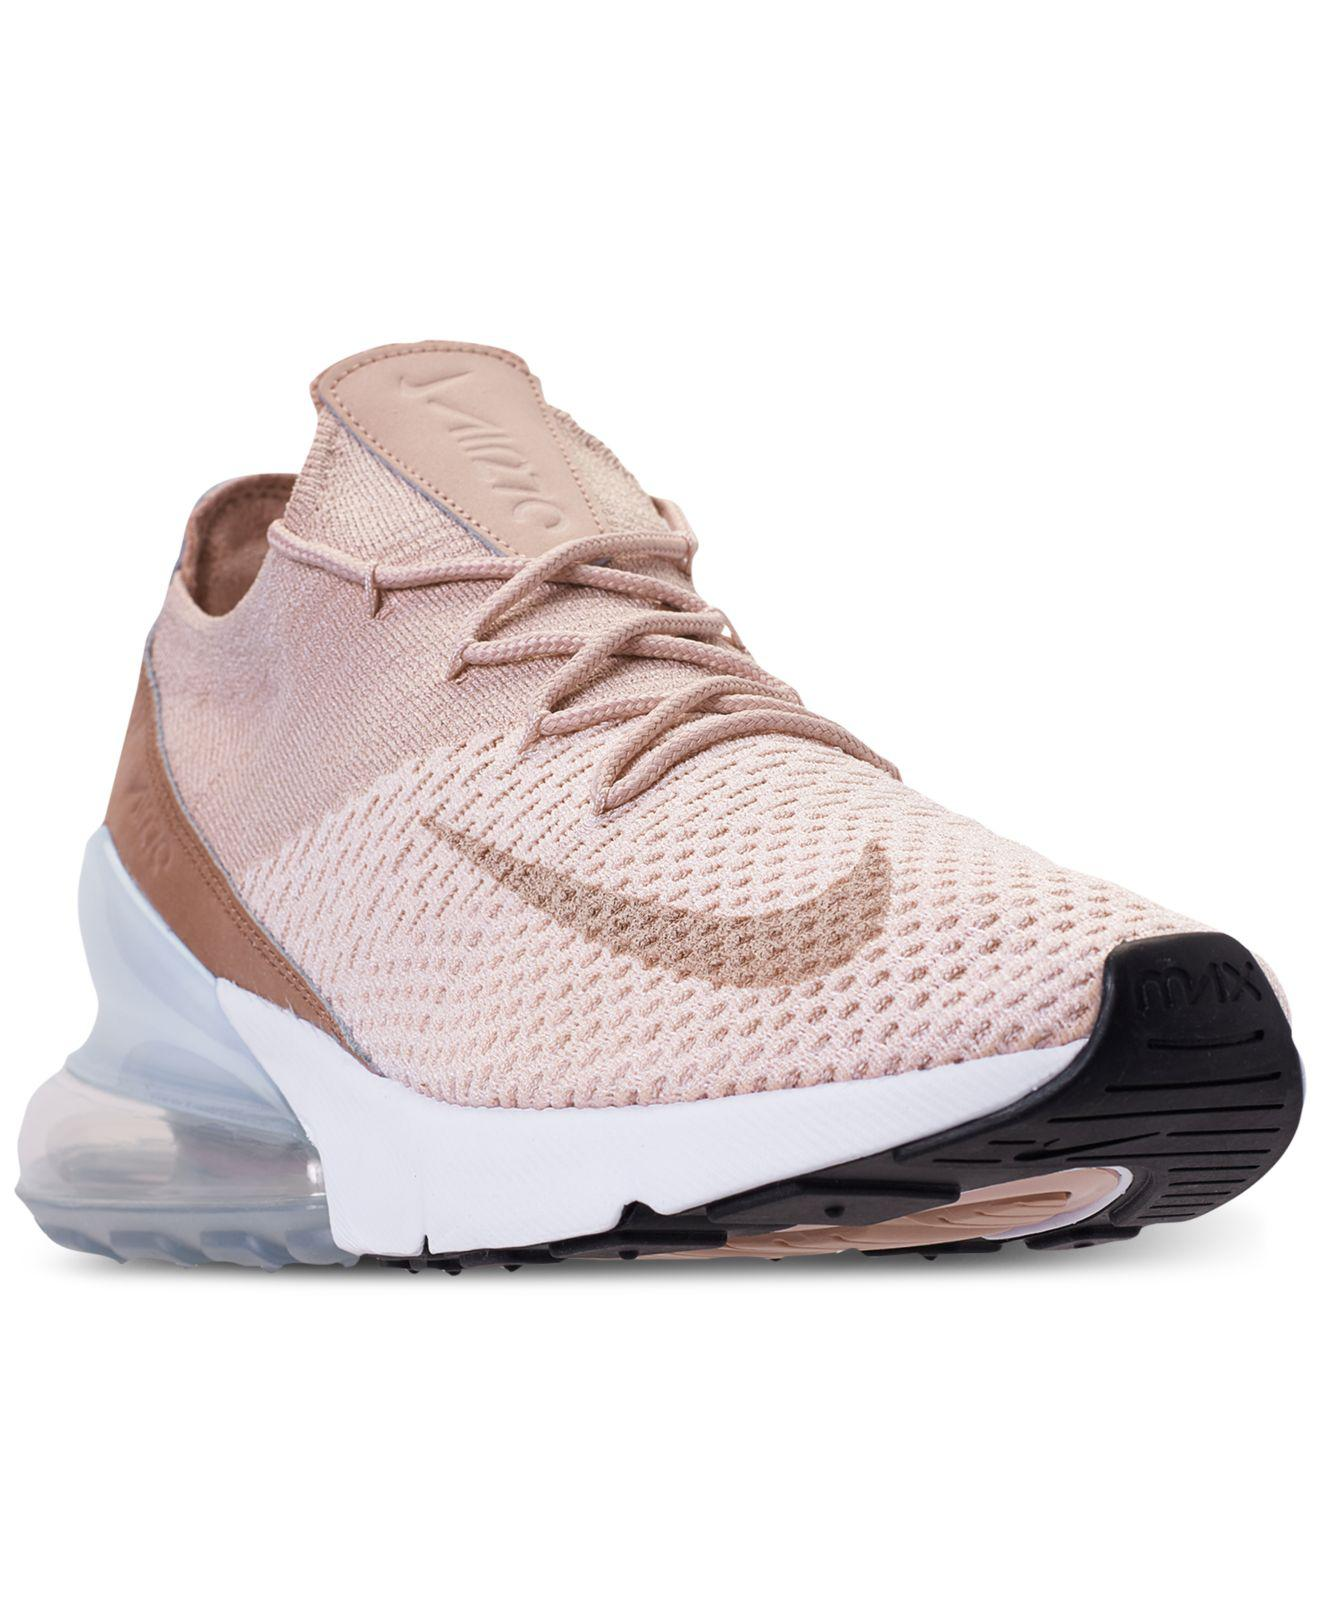 brand new bf3be 01698 Nike Wmns Air Max 270 Flyknit Guava Ice  Particle Beige in Pink - Lyst